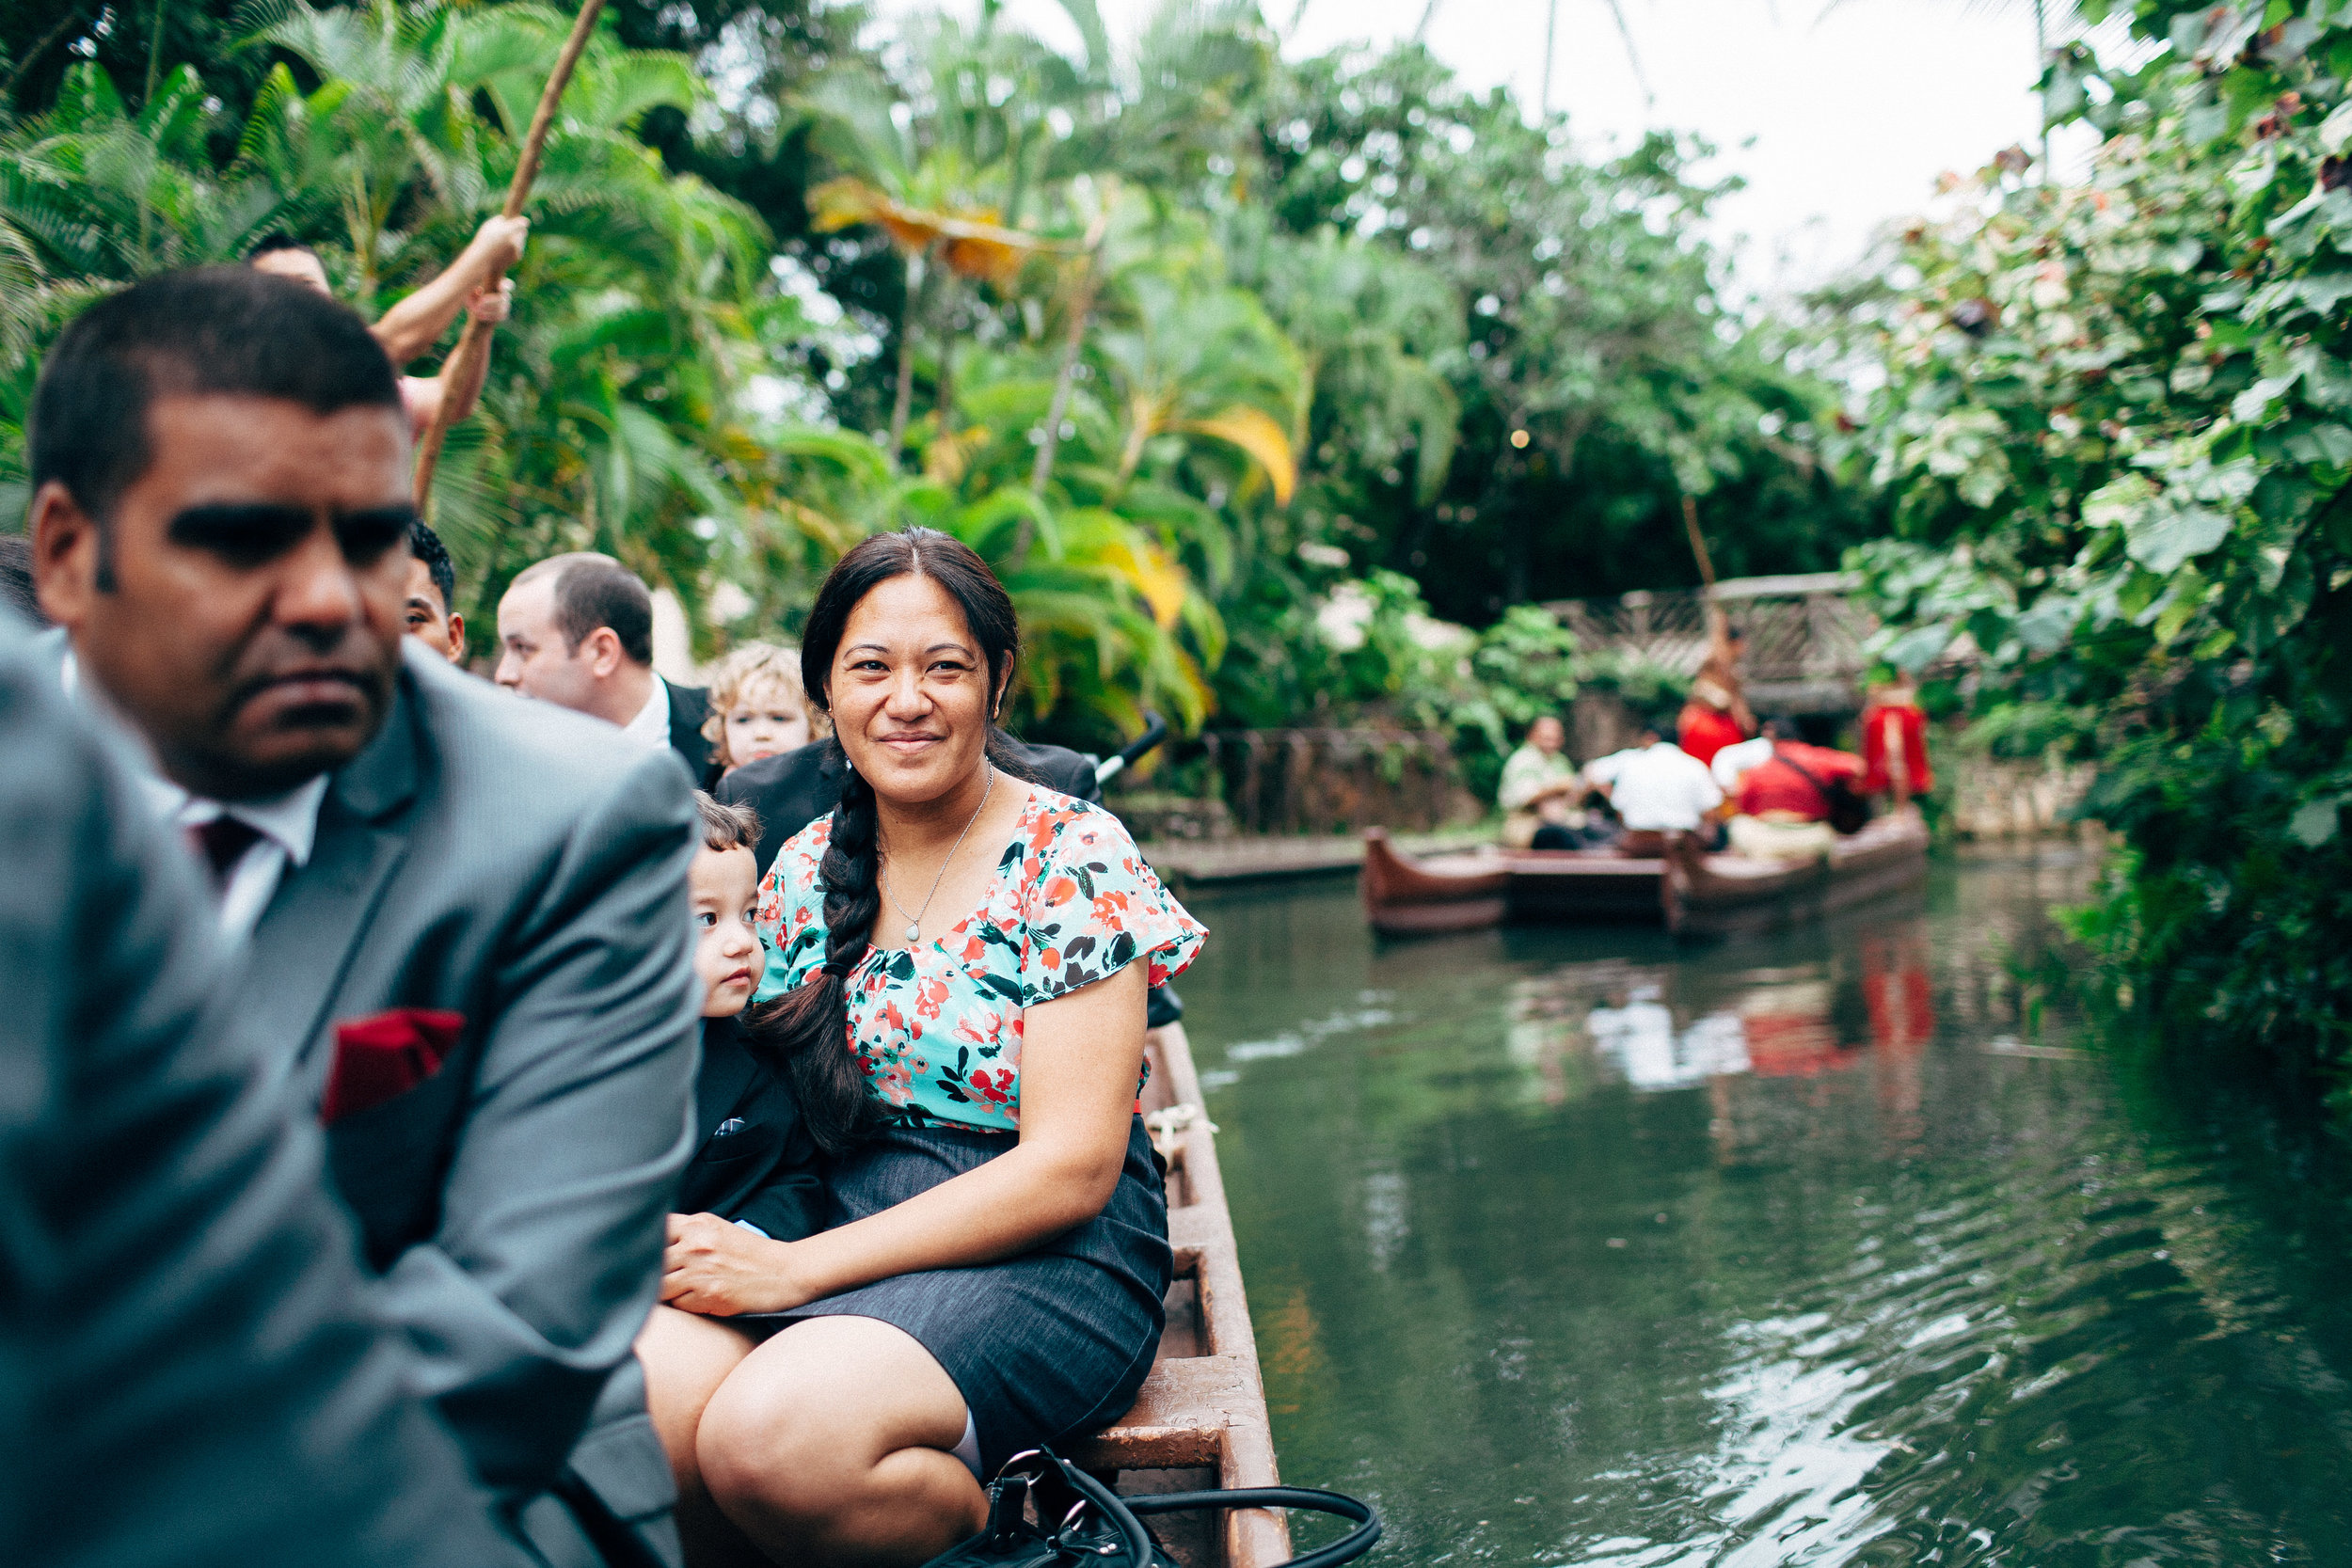 Multicultural Wedding Photographer Near Me Unique Ceremony Location Welsh Bride Tongan Groom